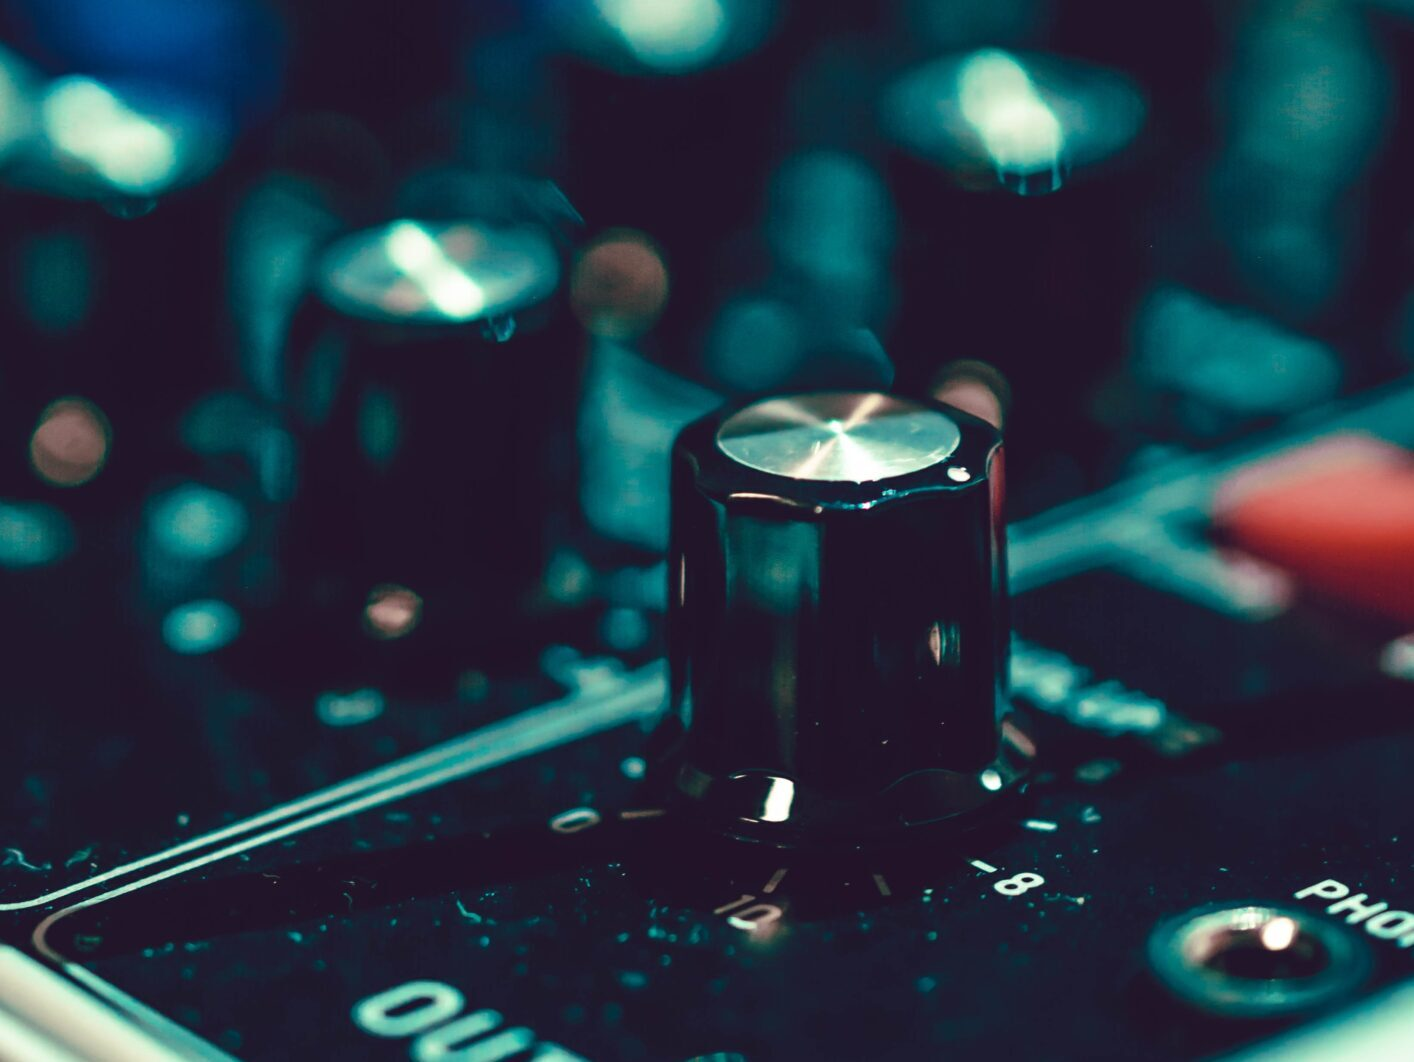 Close up shot of a mixing board